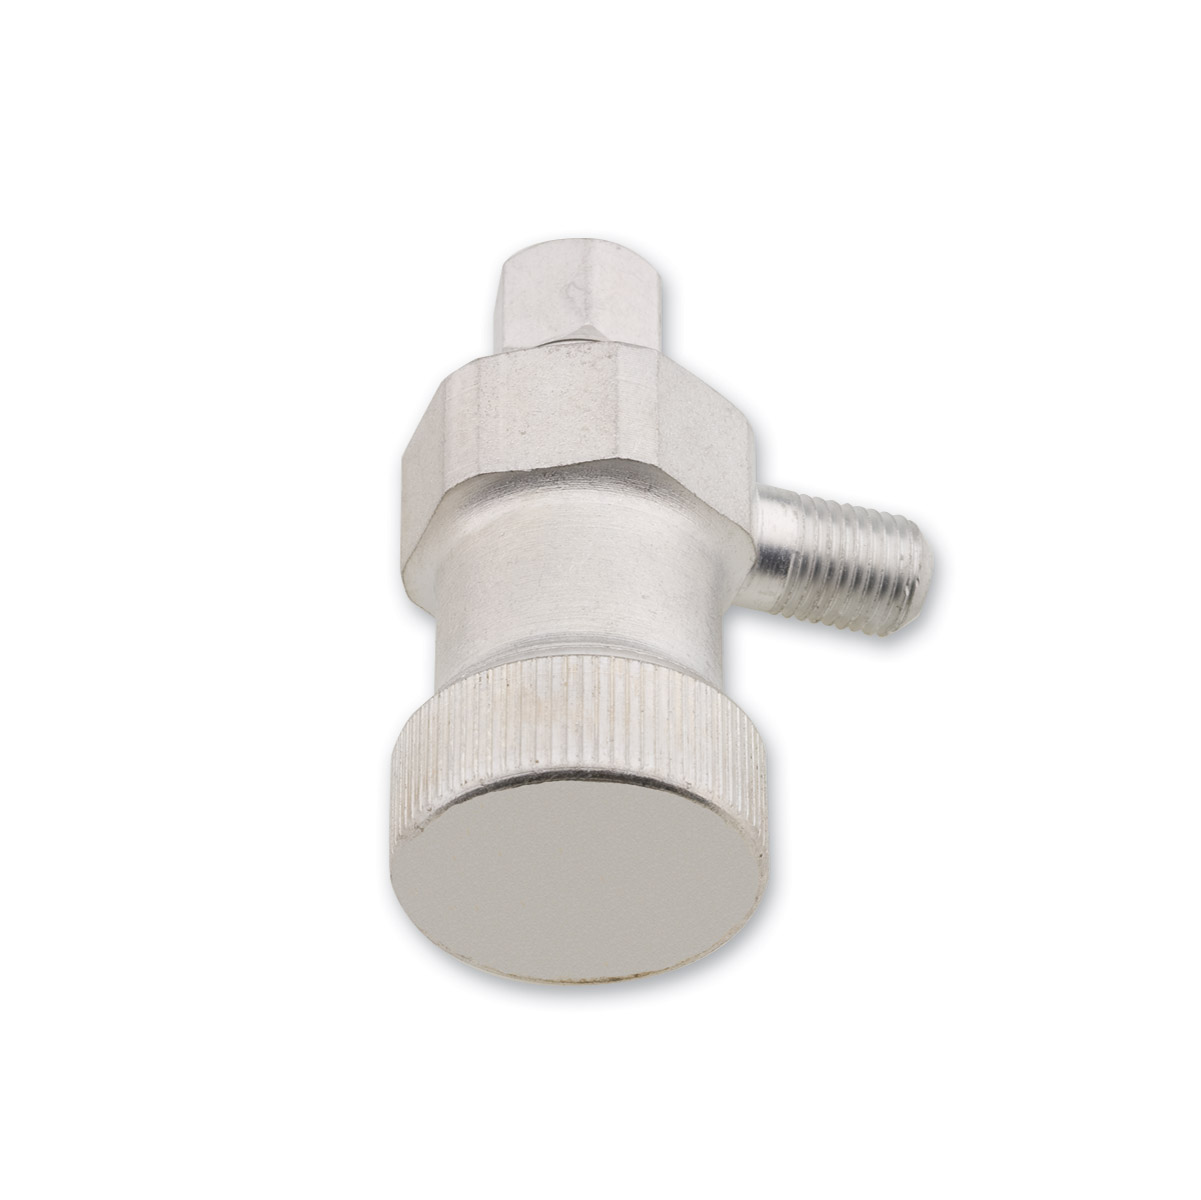 Colony Gas Strainer